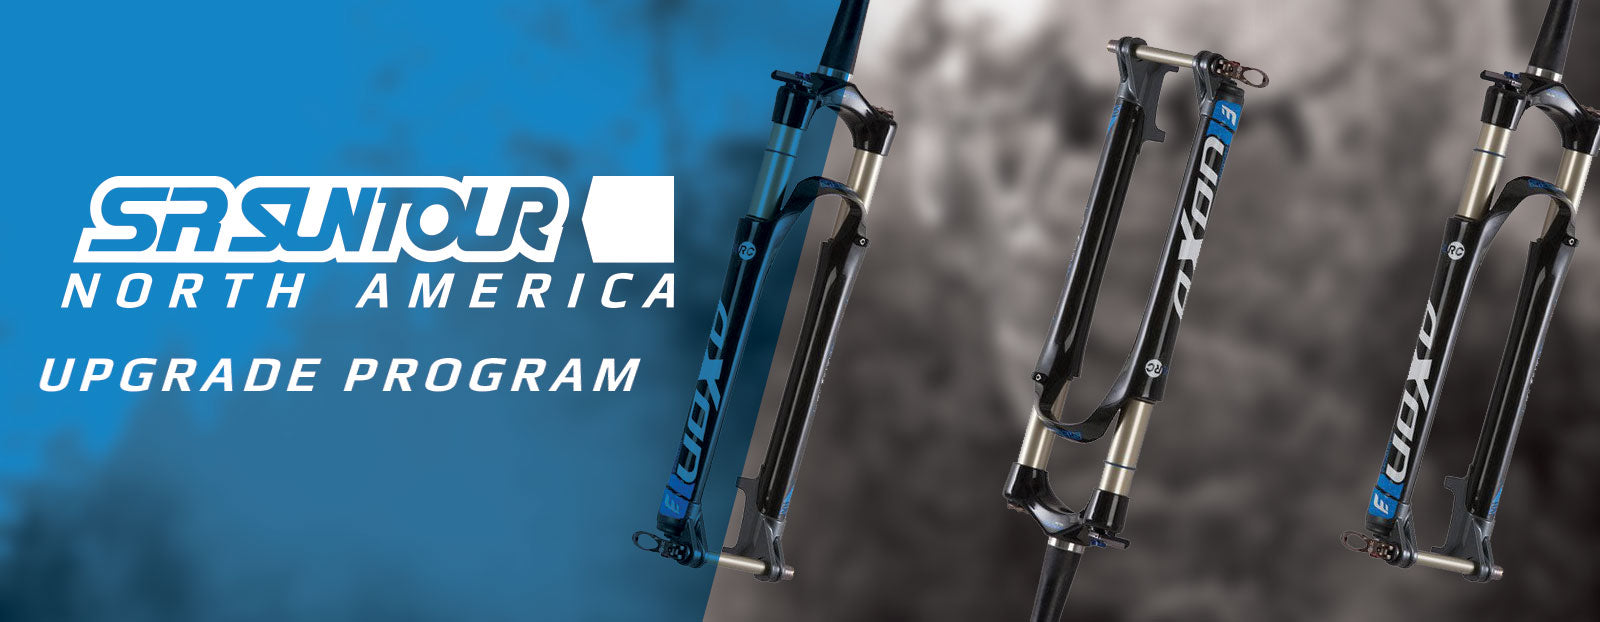 SR SUNTOUR North America Upgrade Program